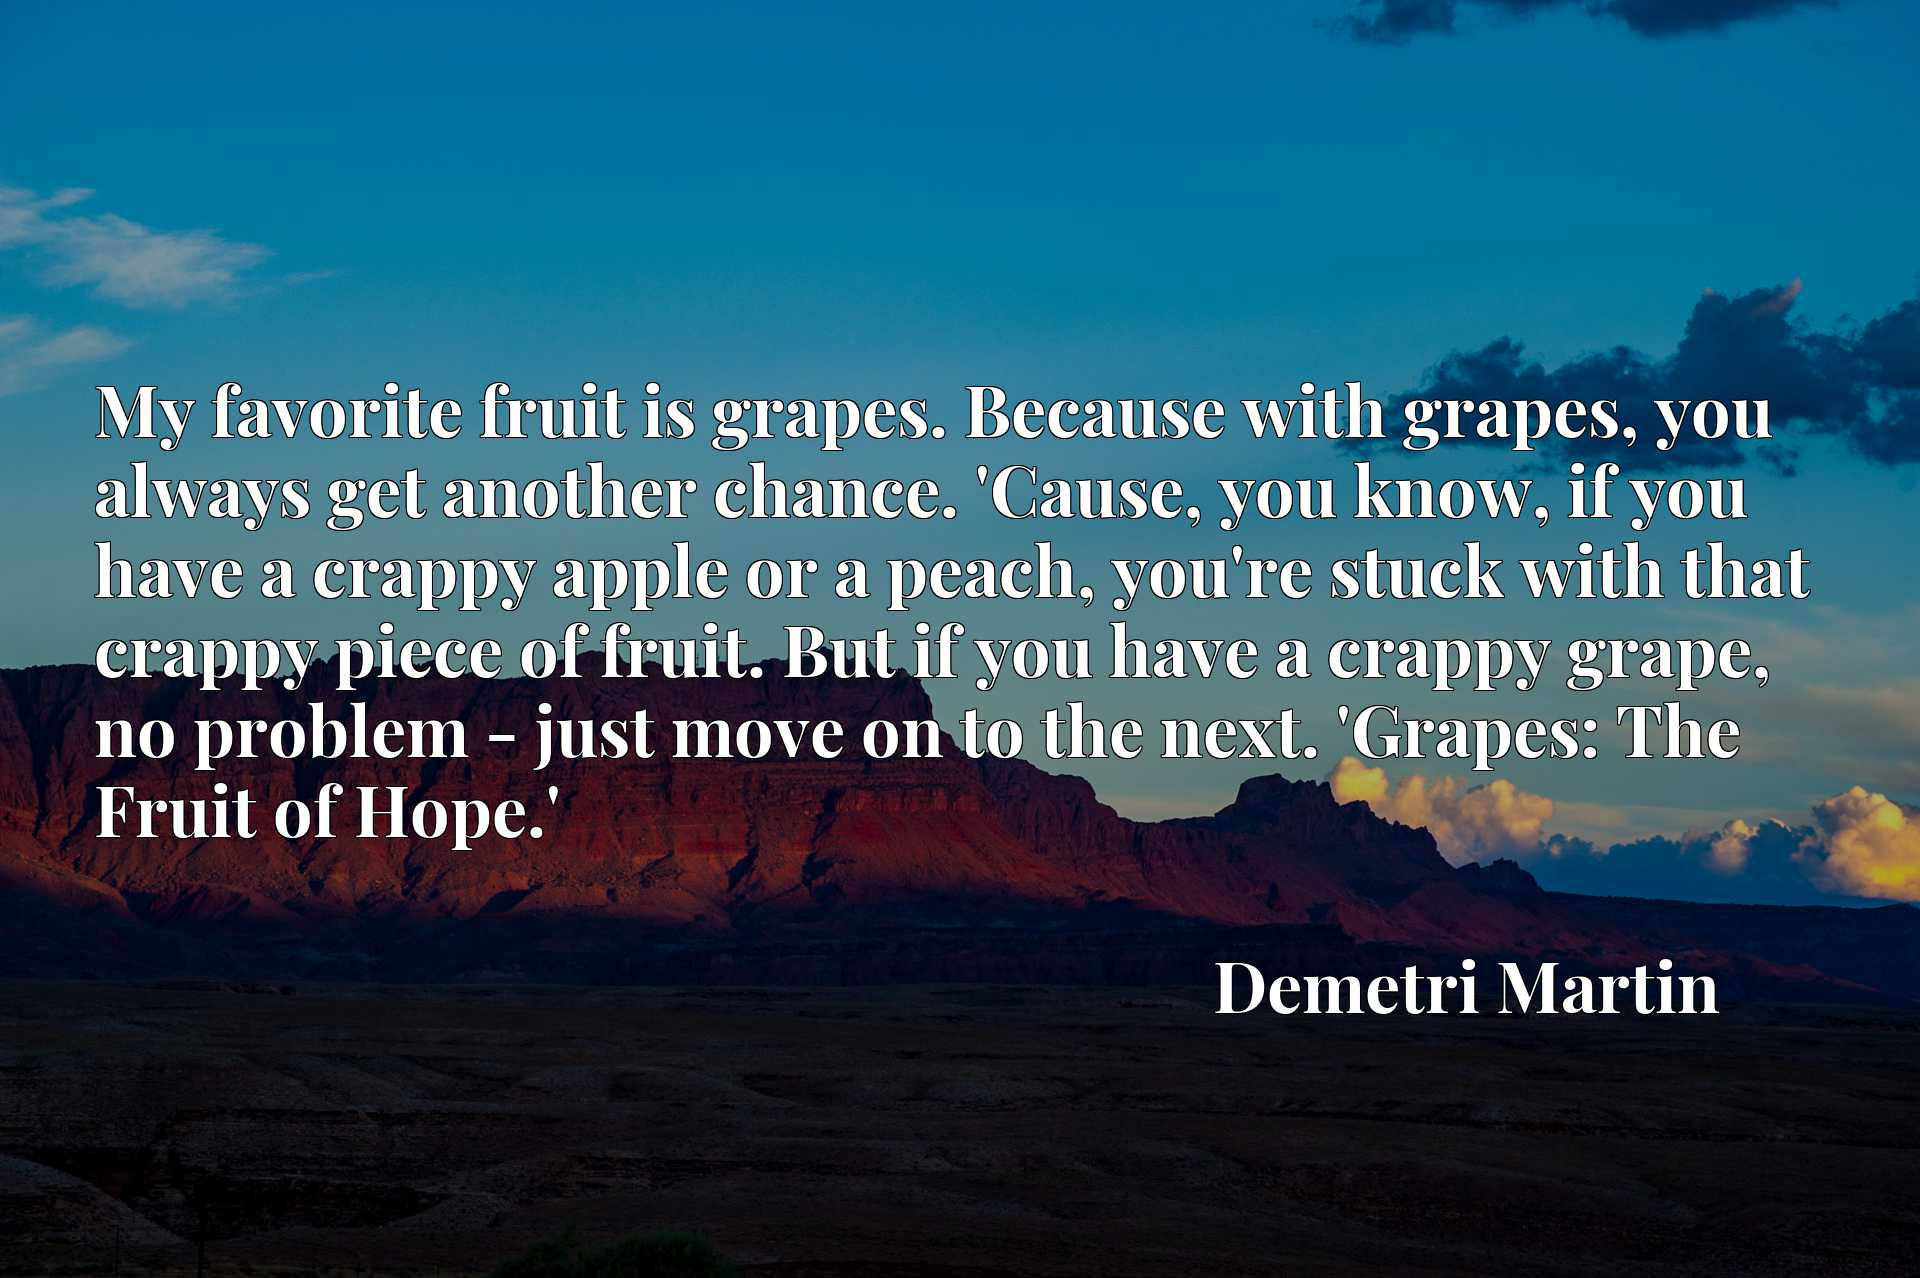 My favorite fruit is grapes. Because with grapes, you always get another chance. 'Cause, you know, if you have a crappy apple or a peach, you're stuck with that crappy piece of fruit. But if you have a crappy grape, no problem - just move on to the next. 'Grapes: The Fruit of Hope.'